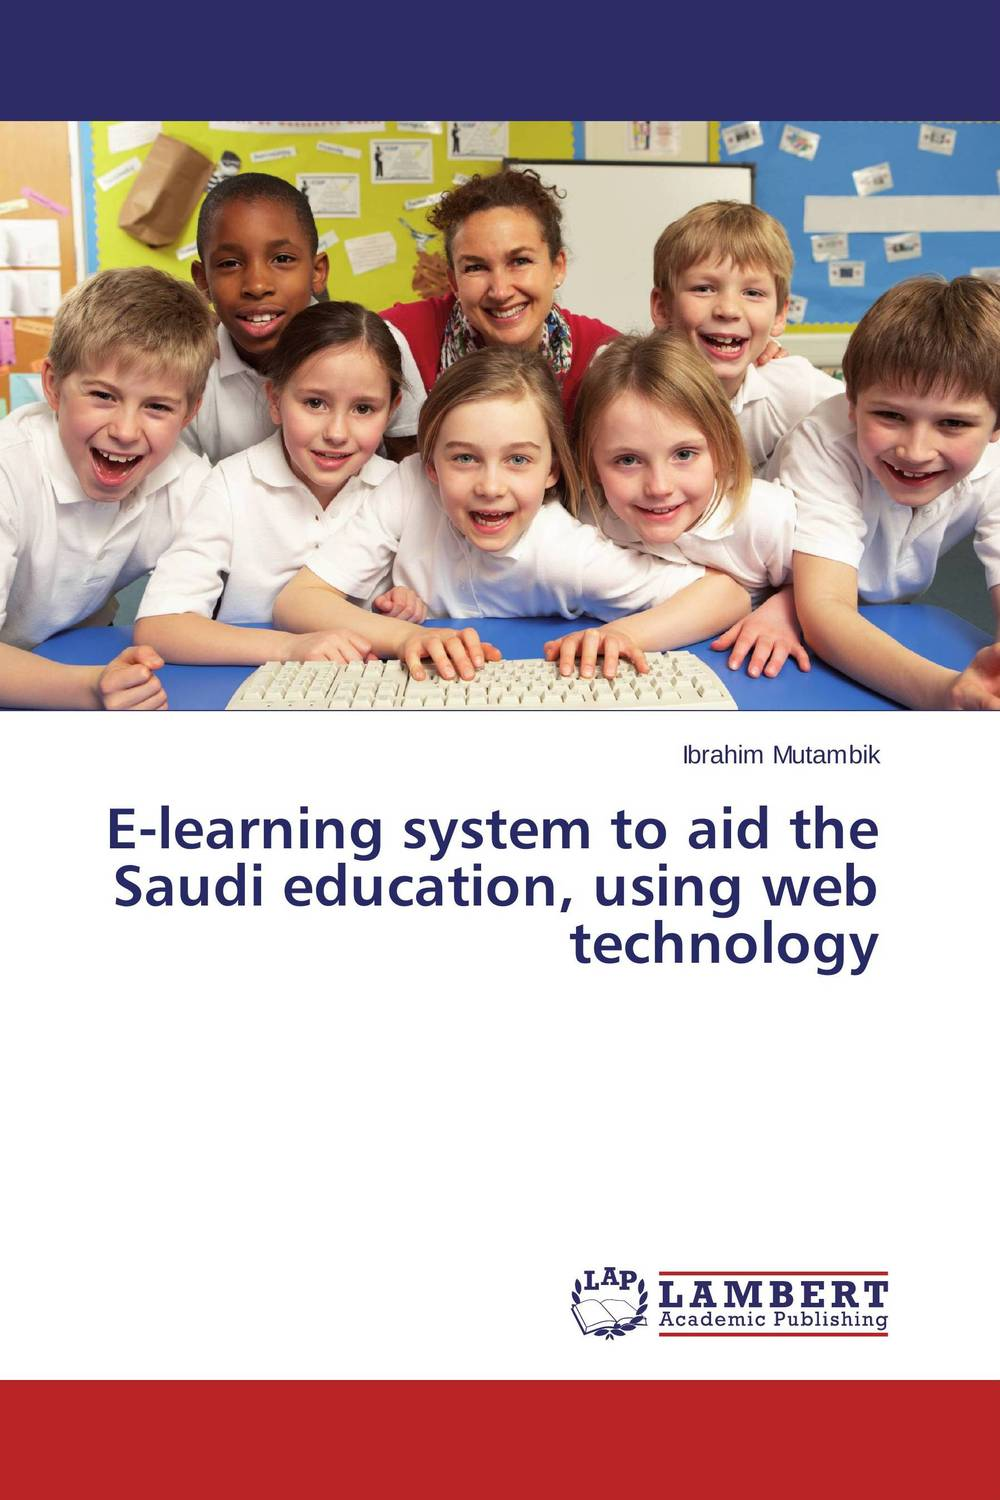 E-learning system to aid the Saudi education, using web technology?